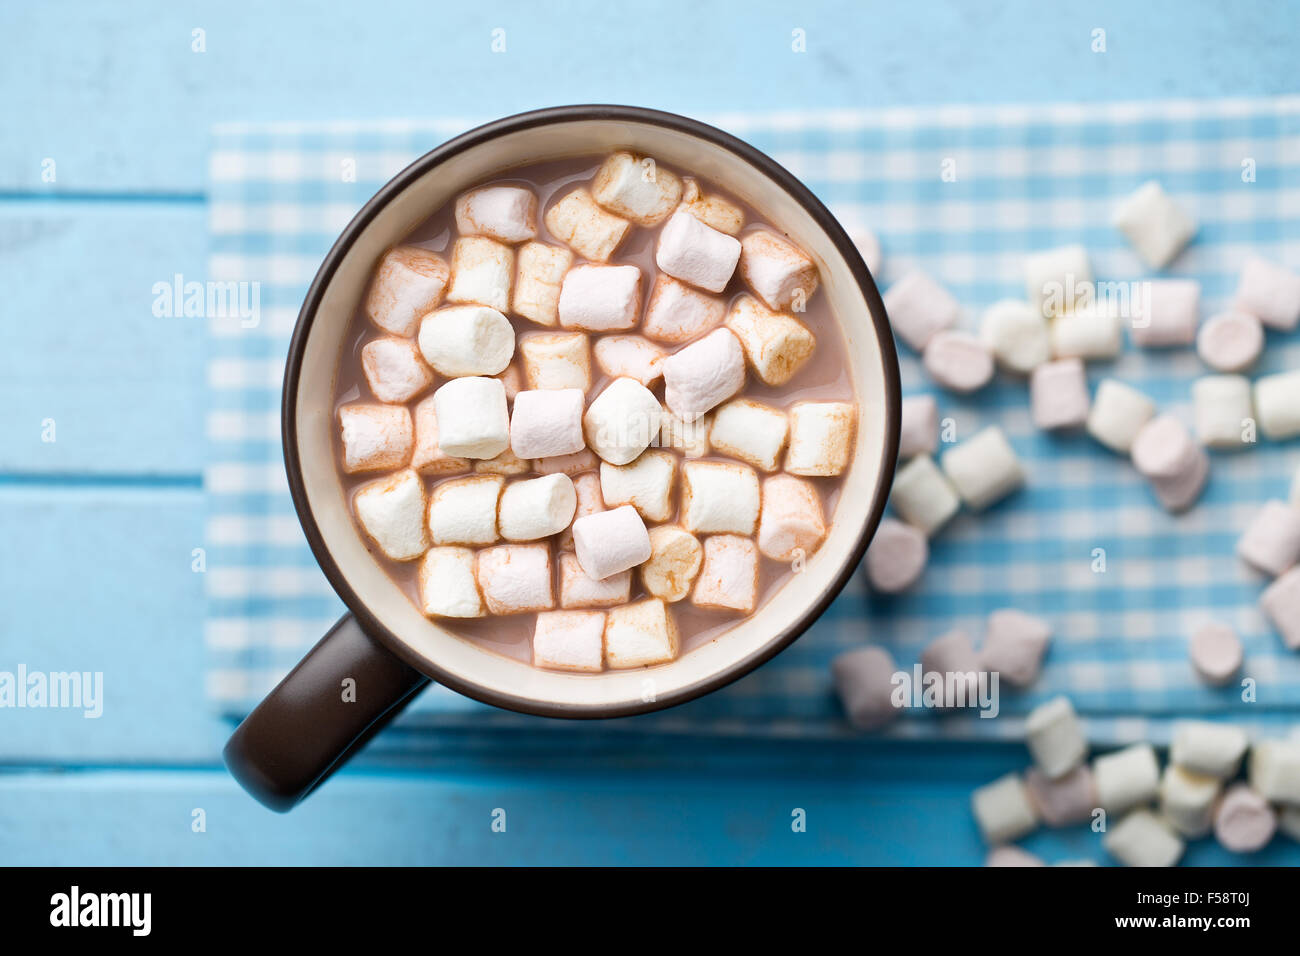 Cocoa drink with marshmallows in mug on table - Stock Image